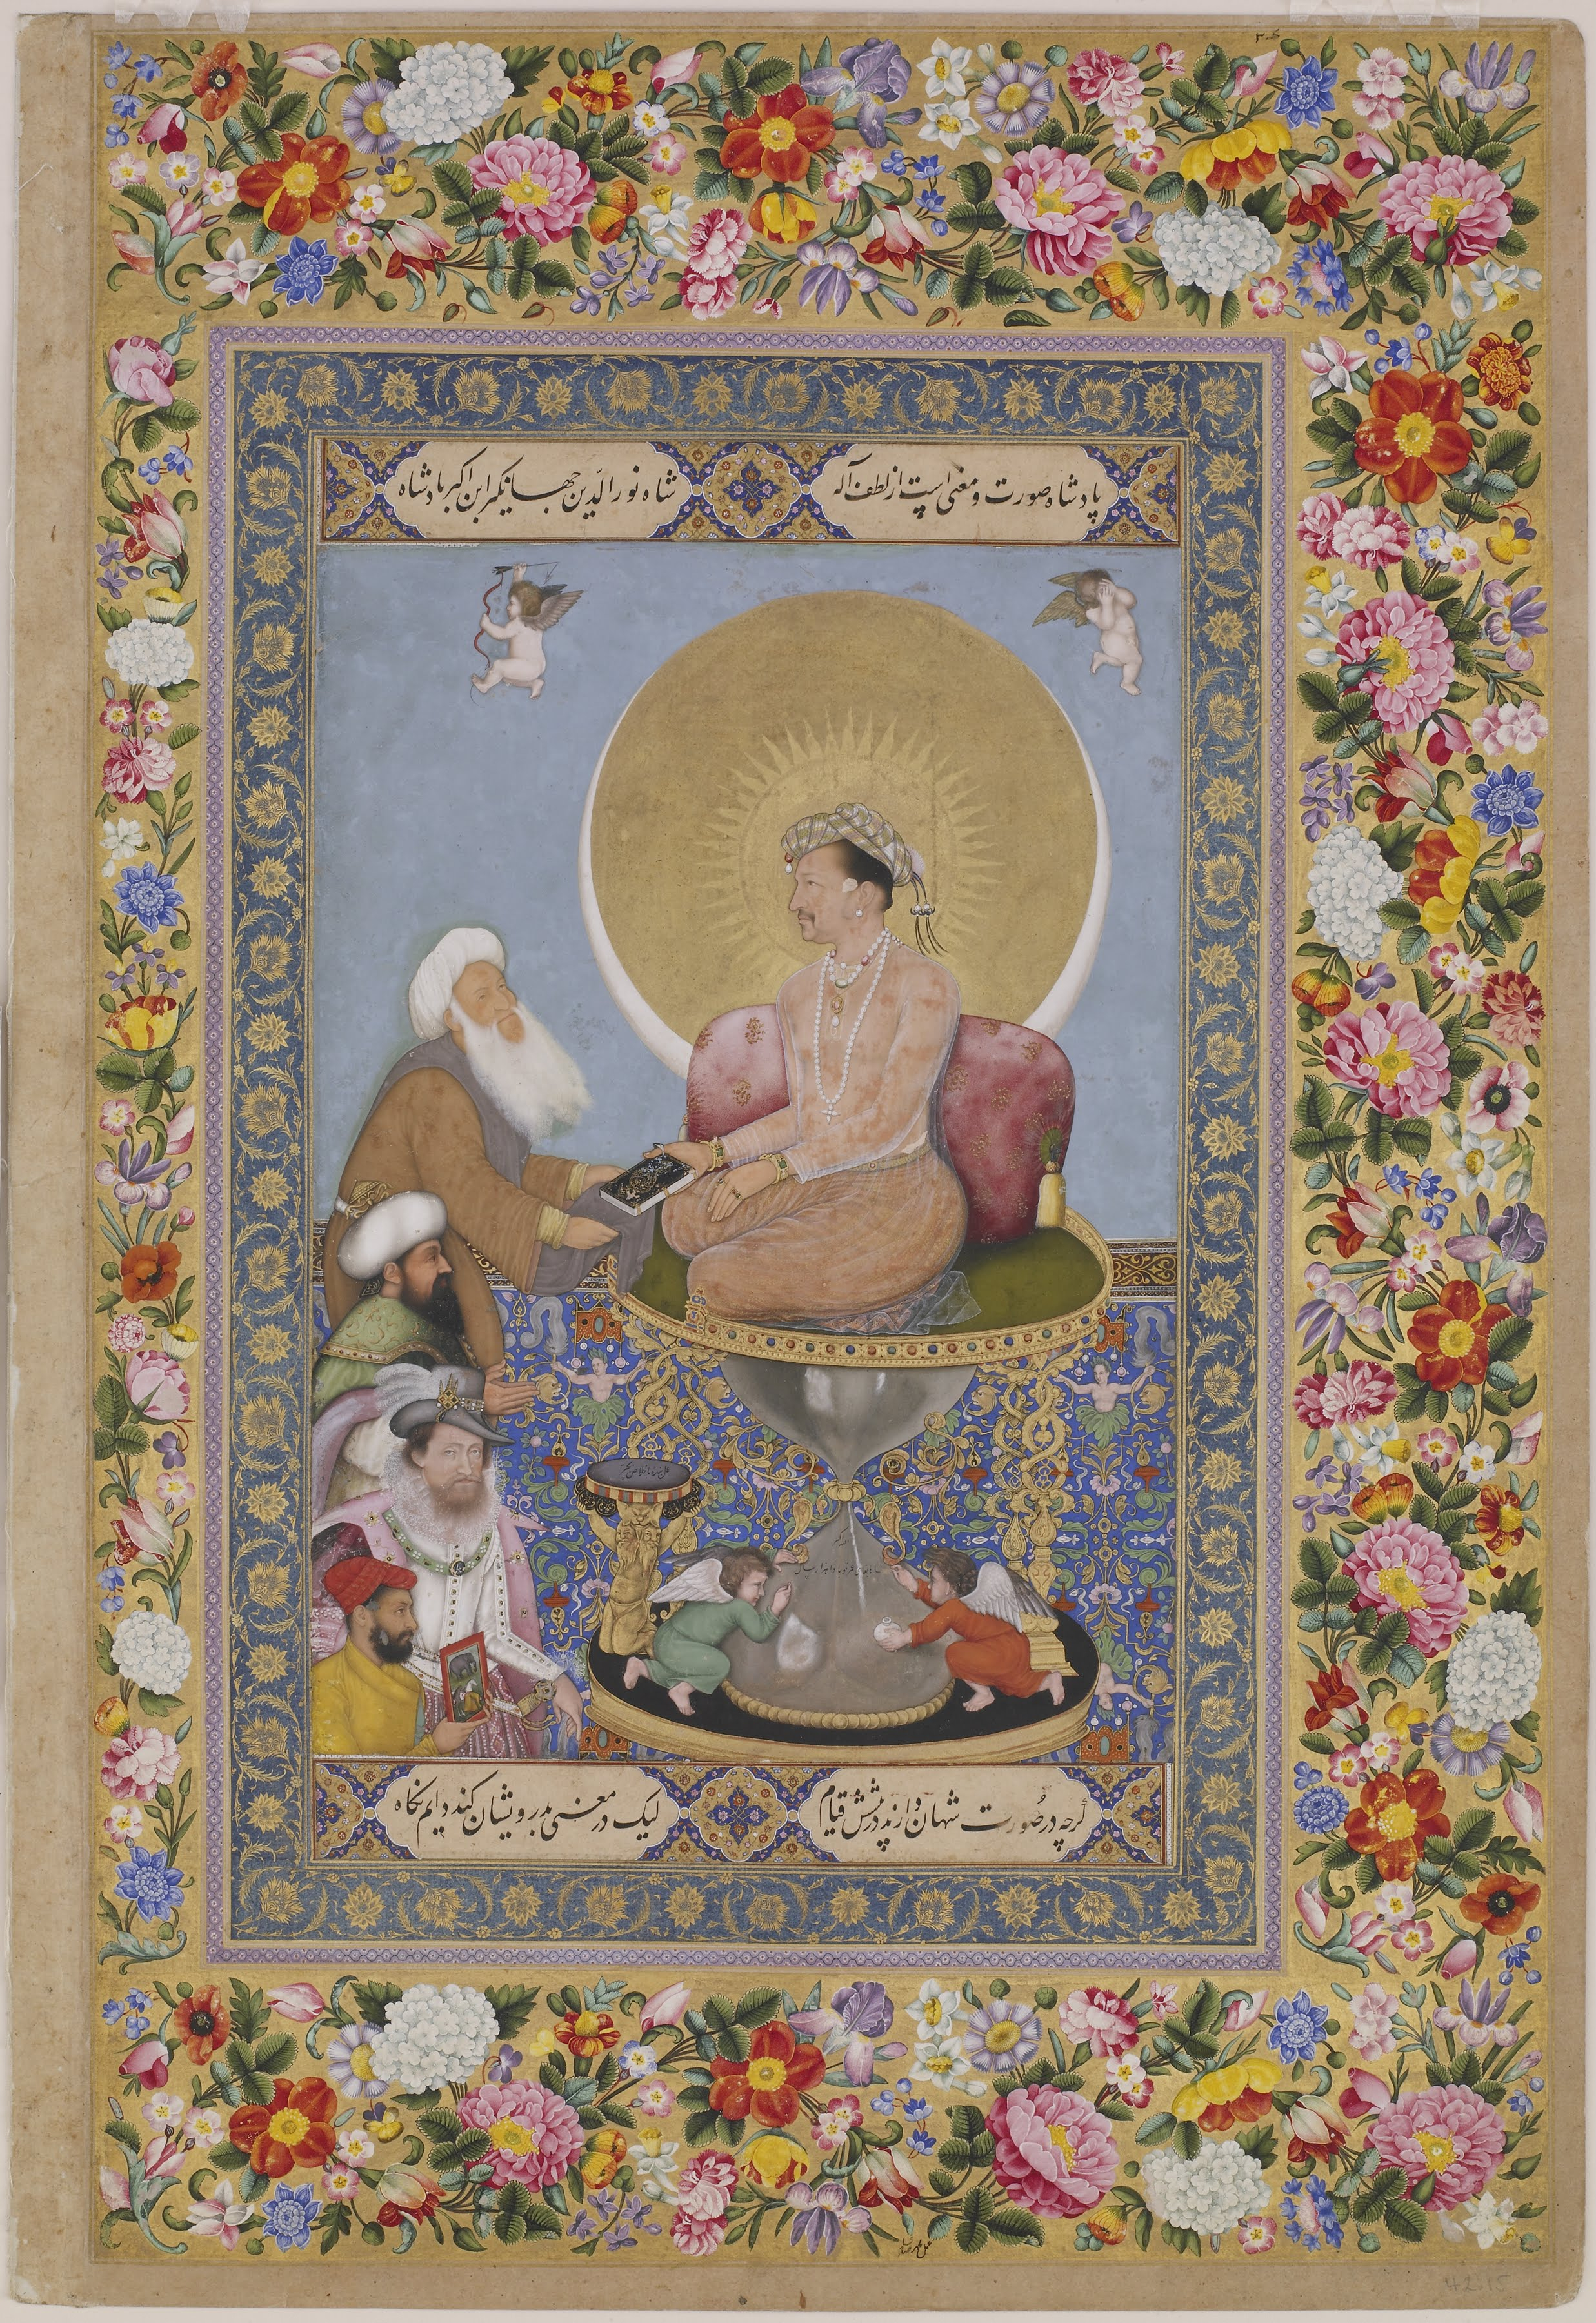 external image Bichitr_-_Jahangir_Preferring_a_Sufi_Shaikh_to_Kings%2C_from_the_St._Petersburg_album_-_Google_Art_Project.jpg